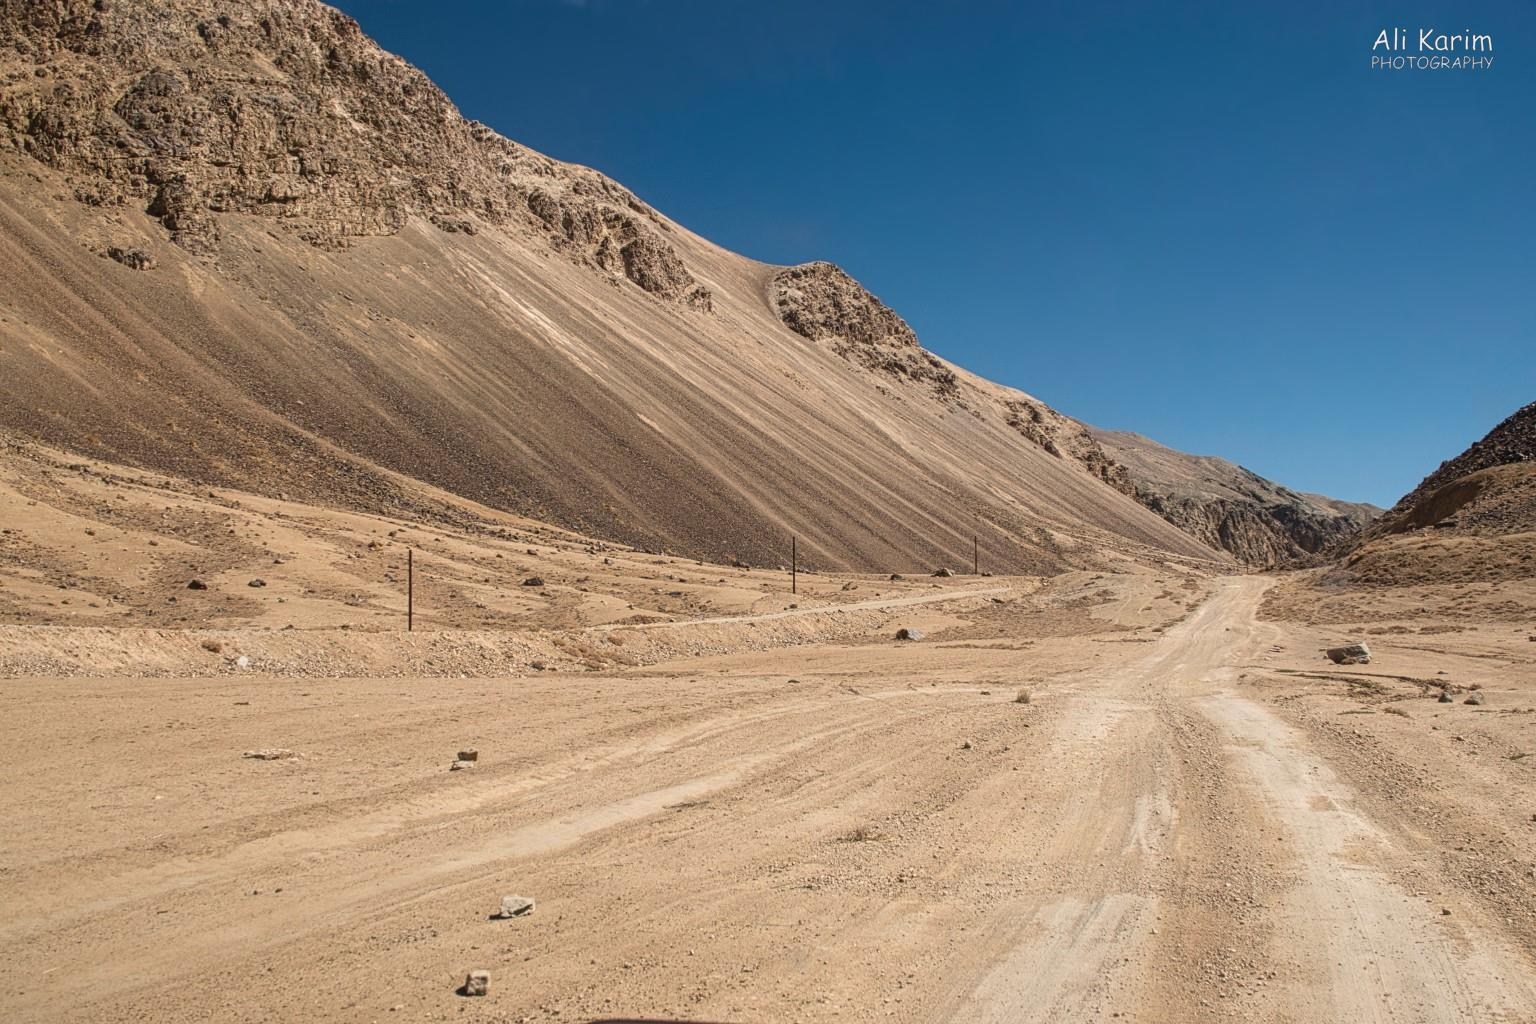 Langar, Tajikistan, Road from Bulunkul back to the Pamir highway; unused electricity/telephone poles still standing